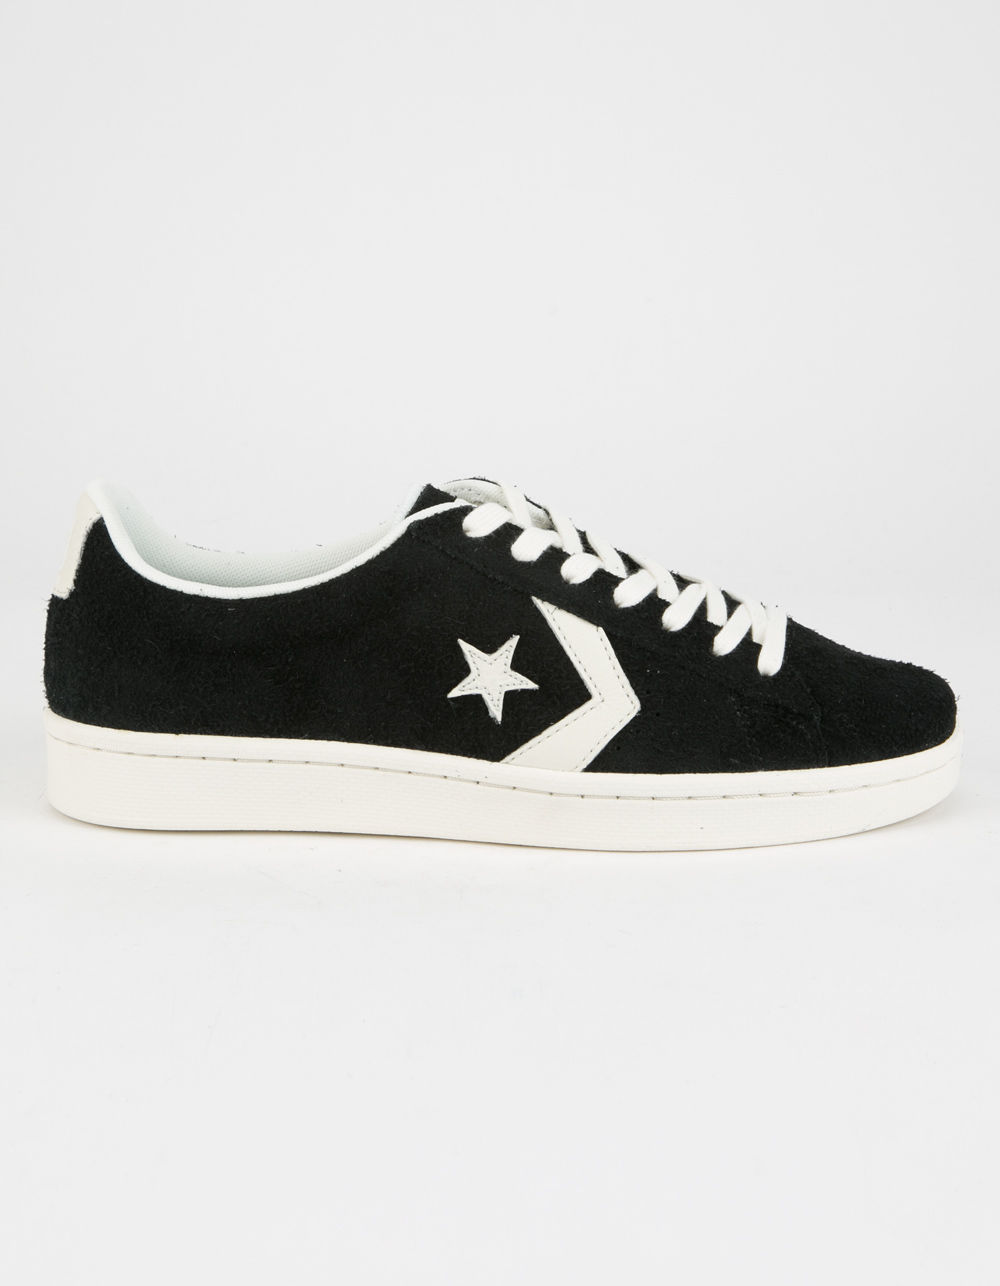 black converse shoes